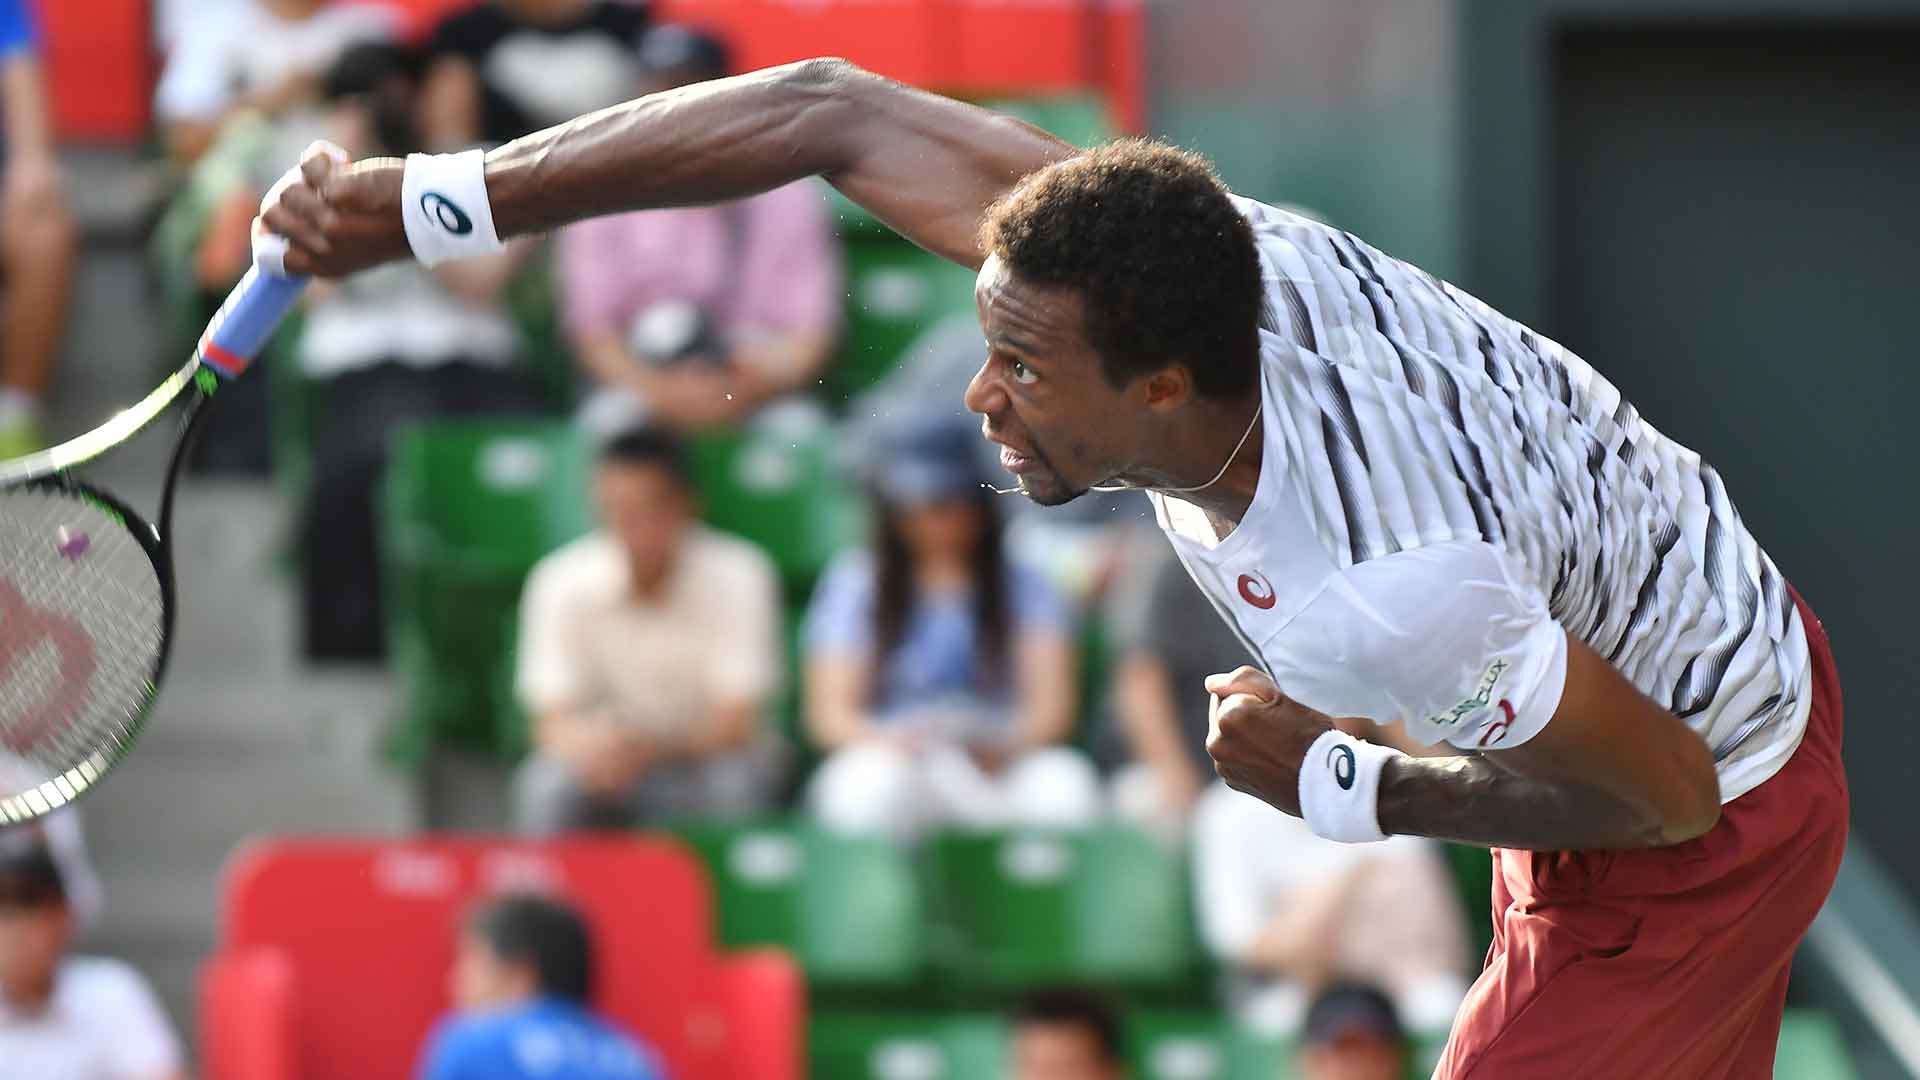 Gael Monfils hangs on to defeat Gilles Simon and move into the quarter-finals.